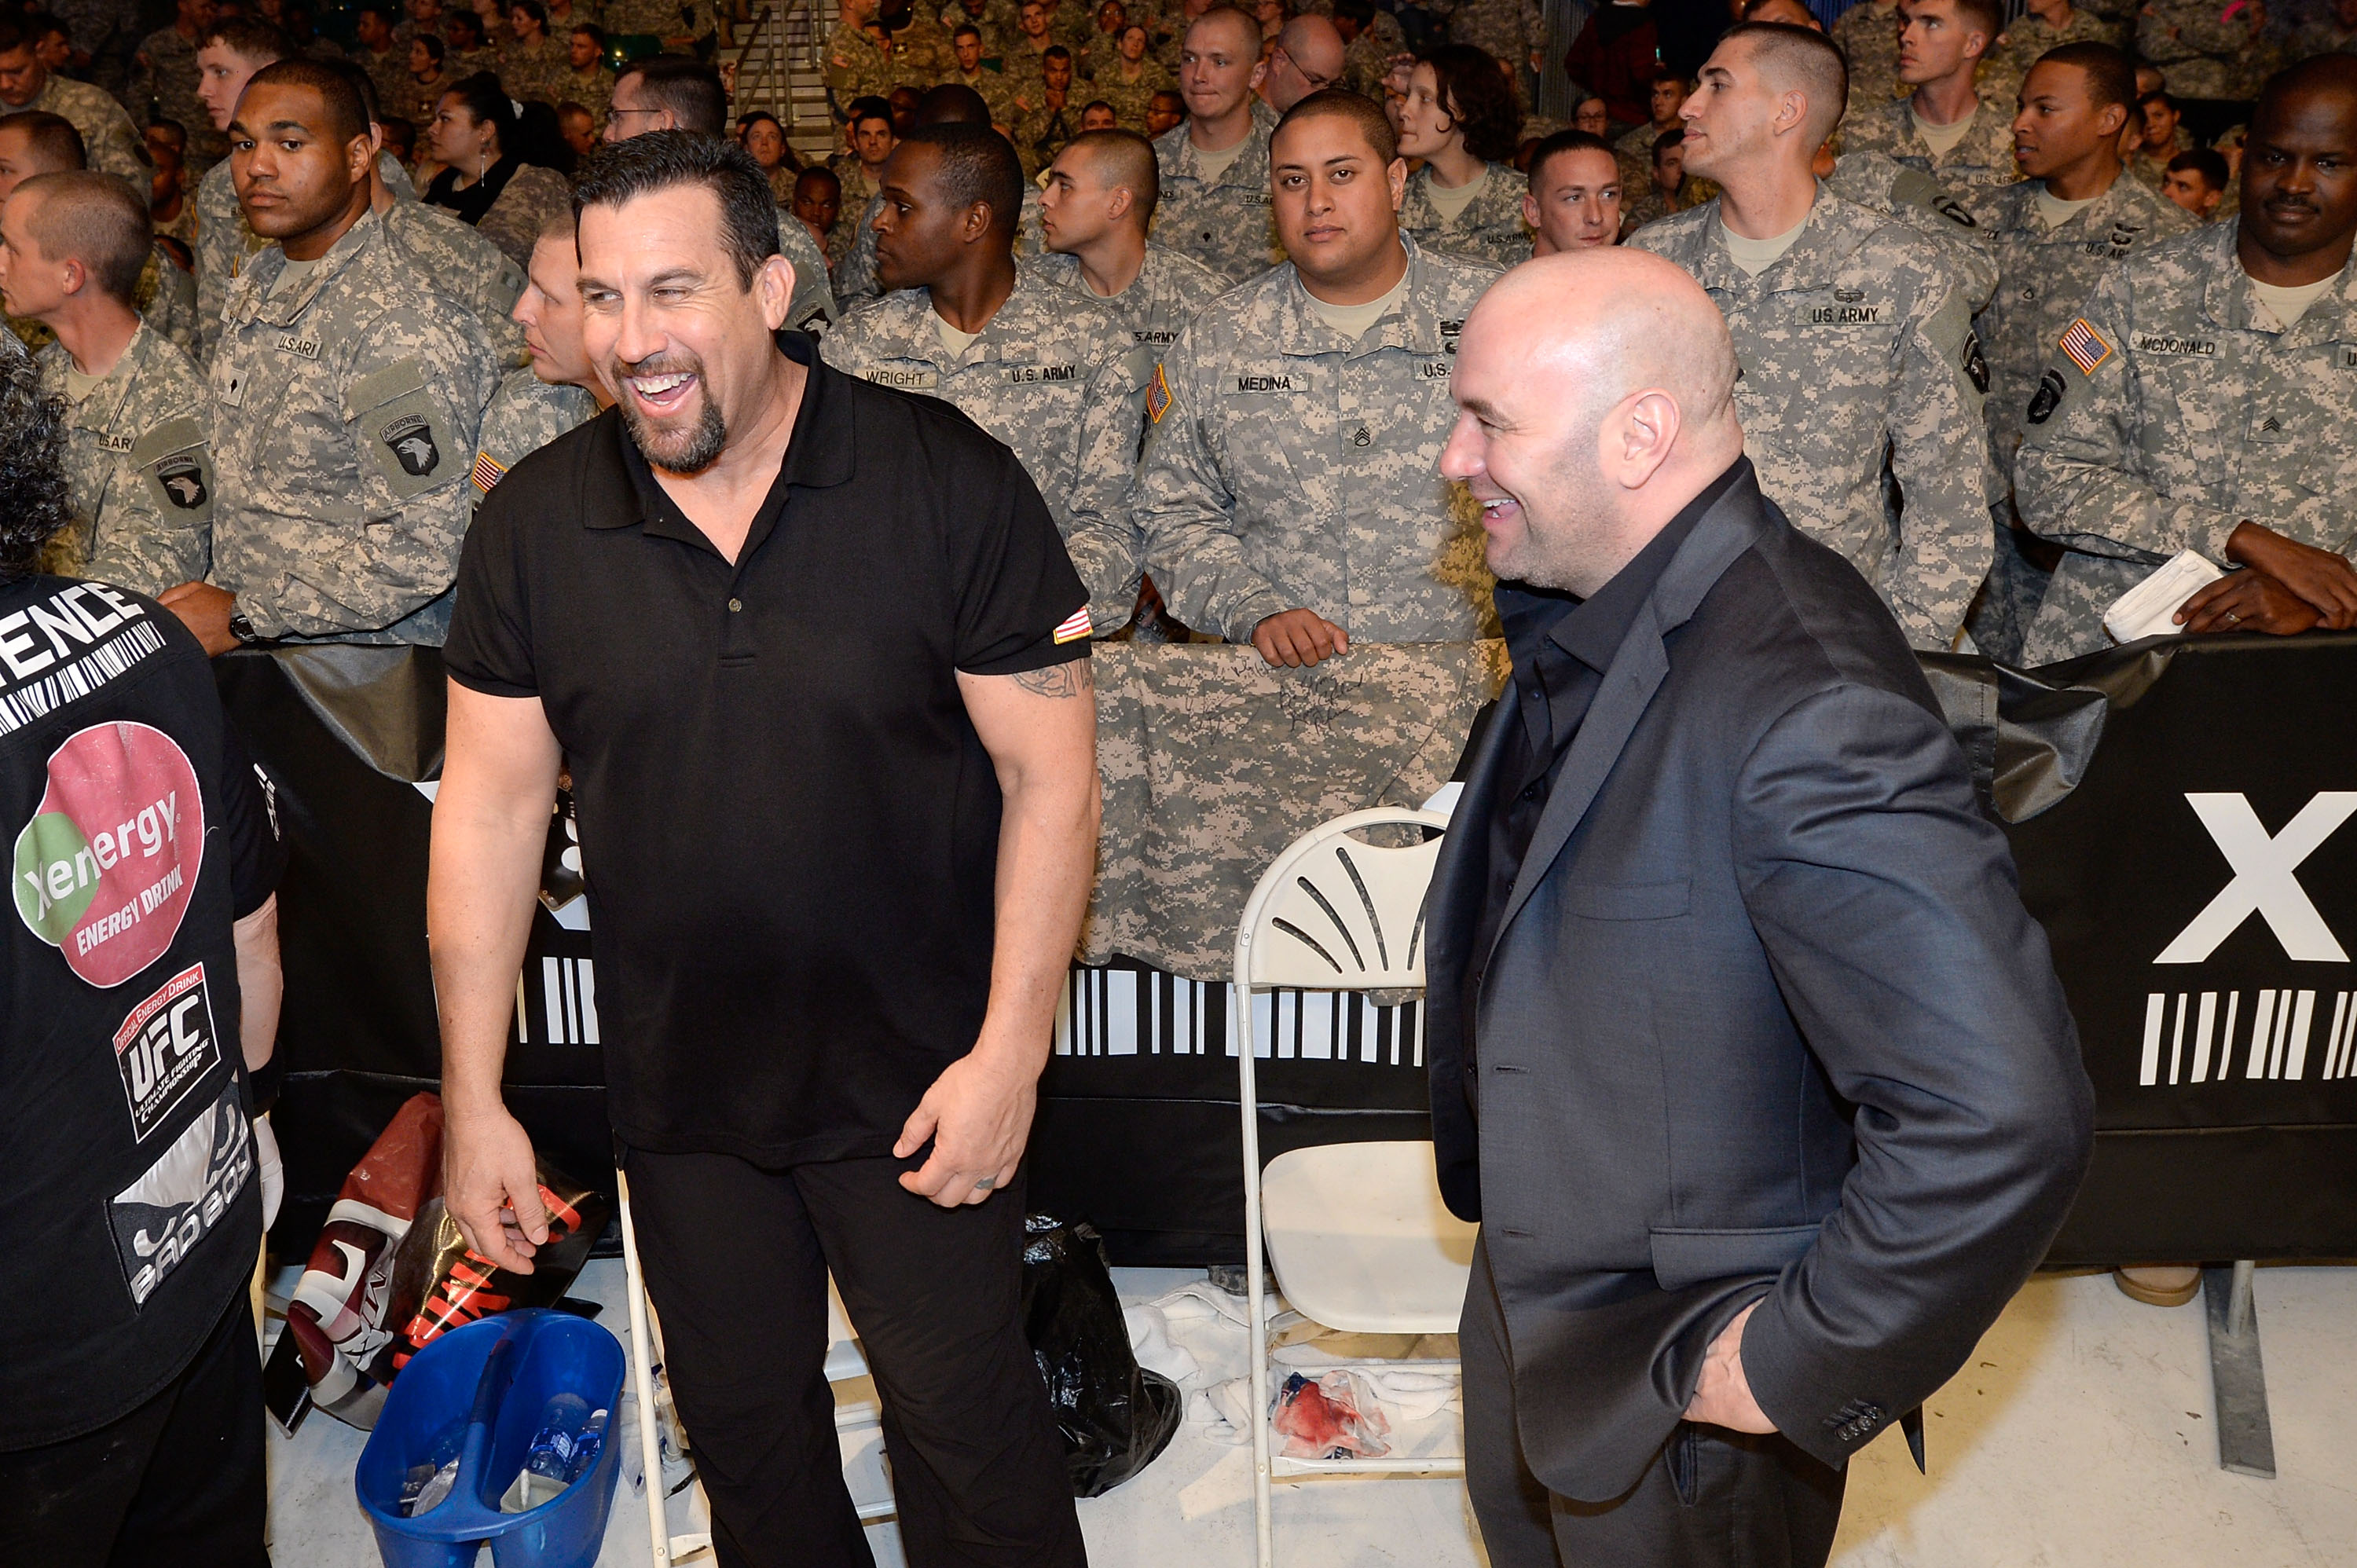 UFC President Dana White laughs with referee John McCarthy in 2013